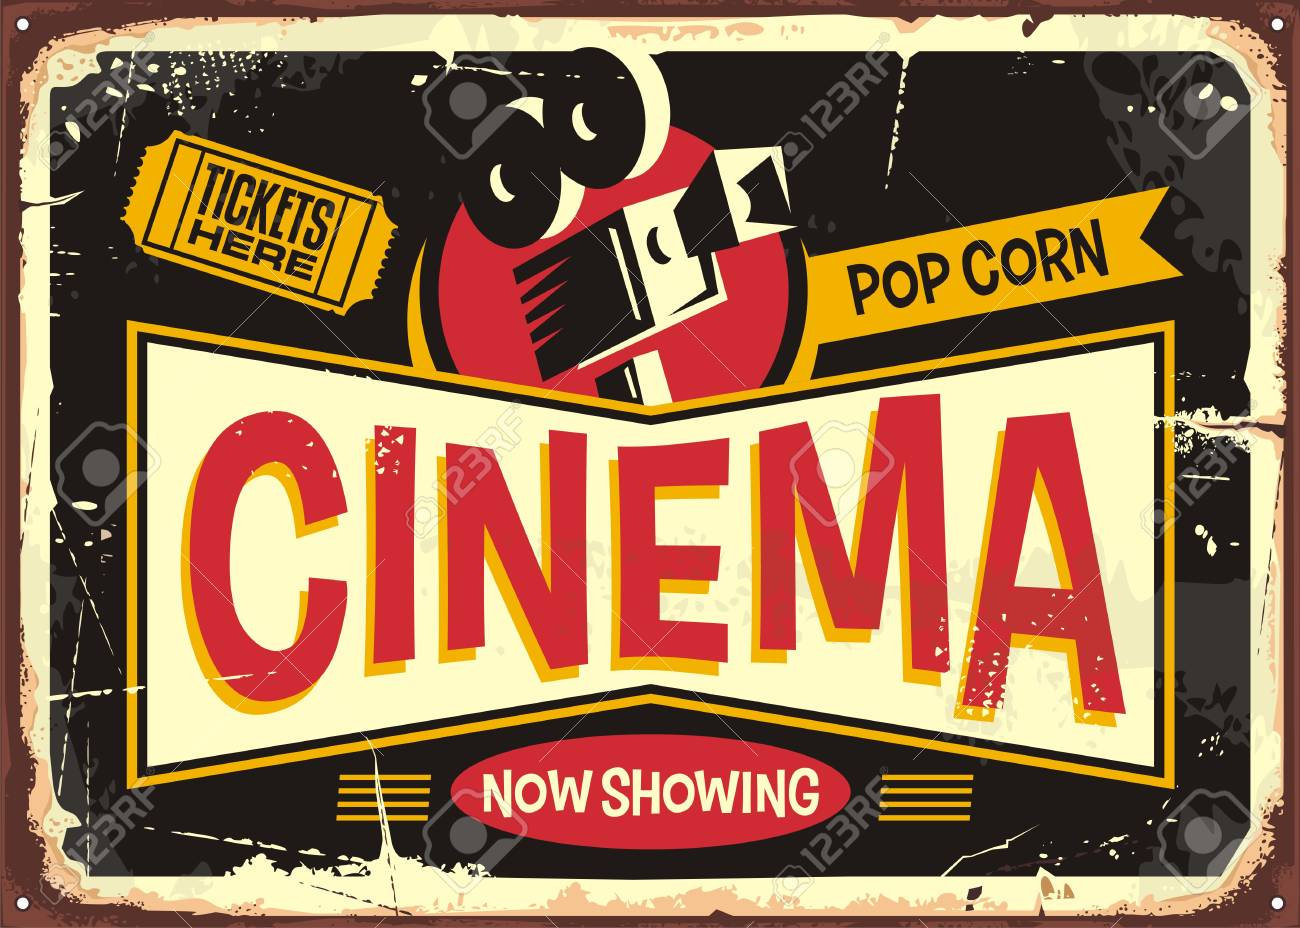 Cinema retro tin sign design template. Vintage entertainment poster layout with movie camera and cinema ticket on a black background. - 104990939